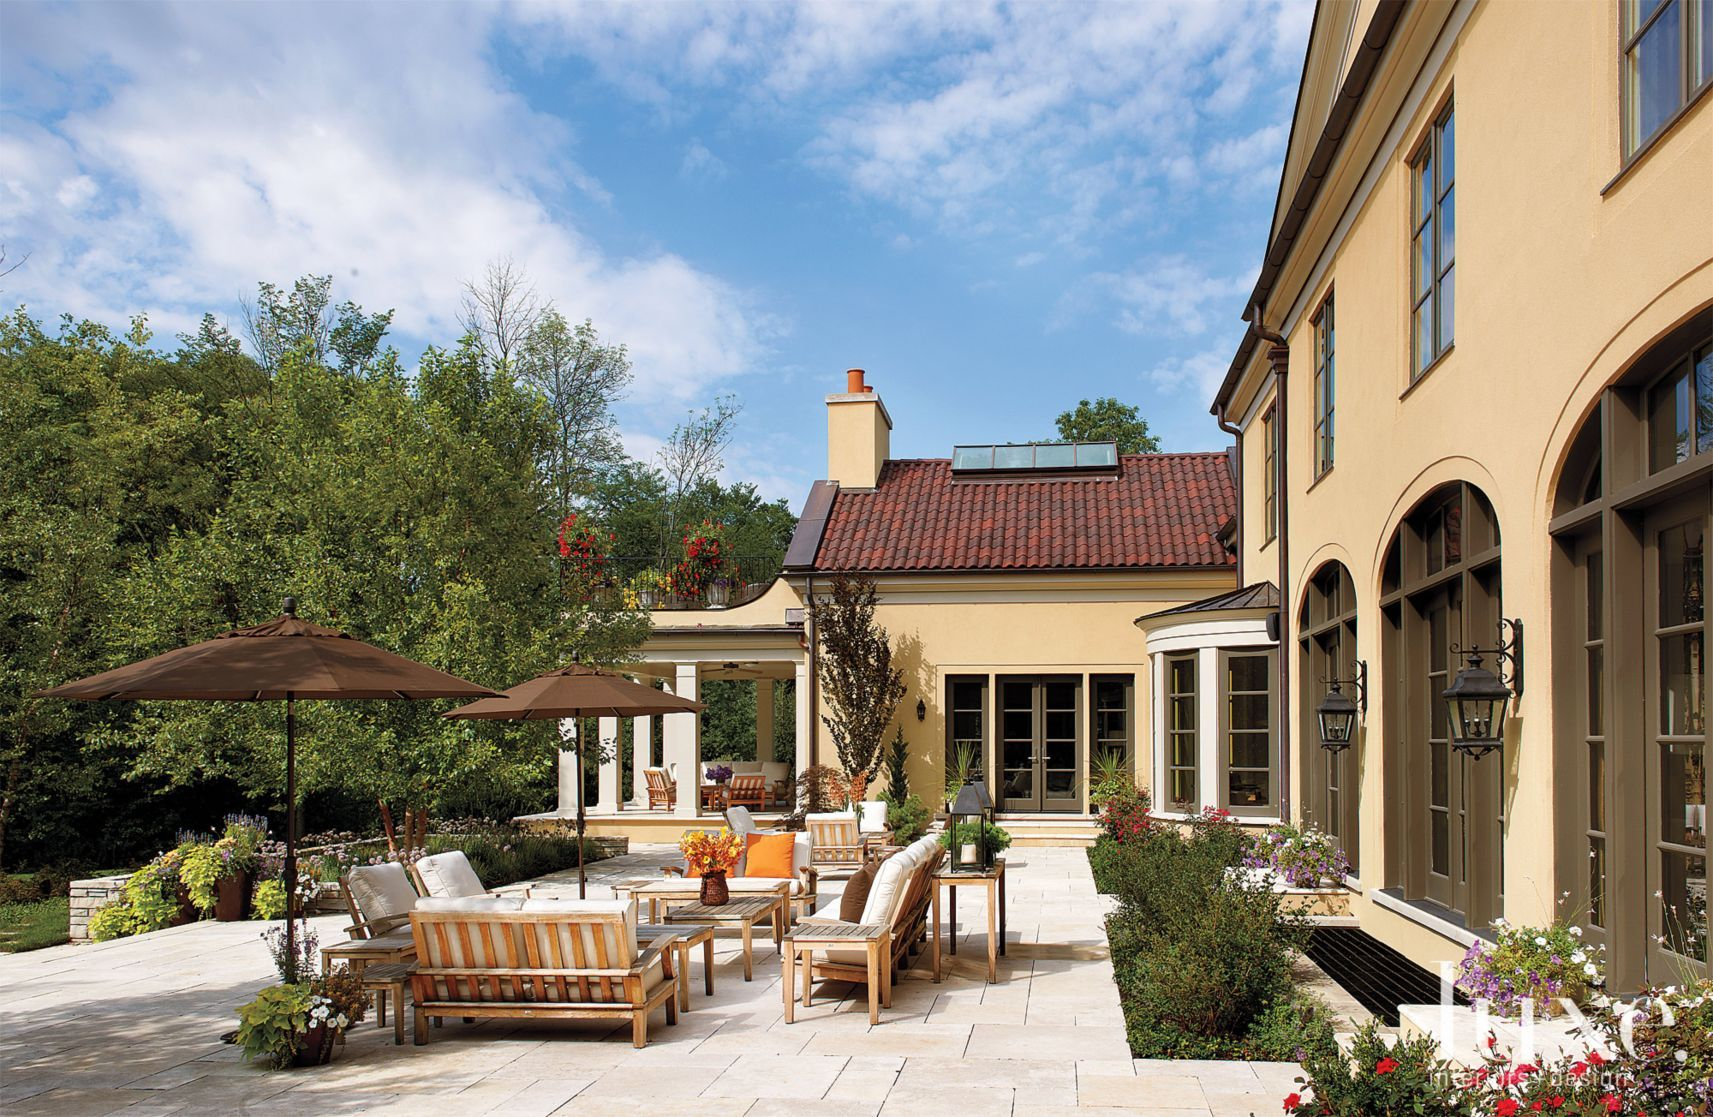 Outdoor Patio Landscape | Patio, Arched windows, Red tiles